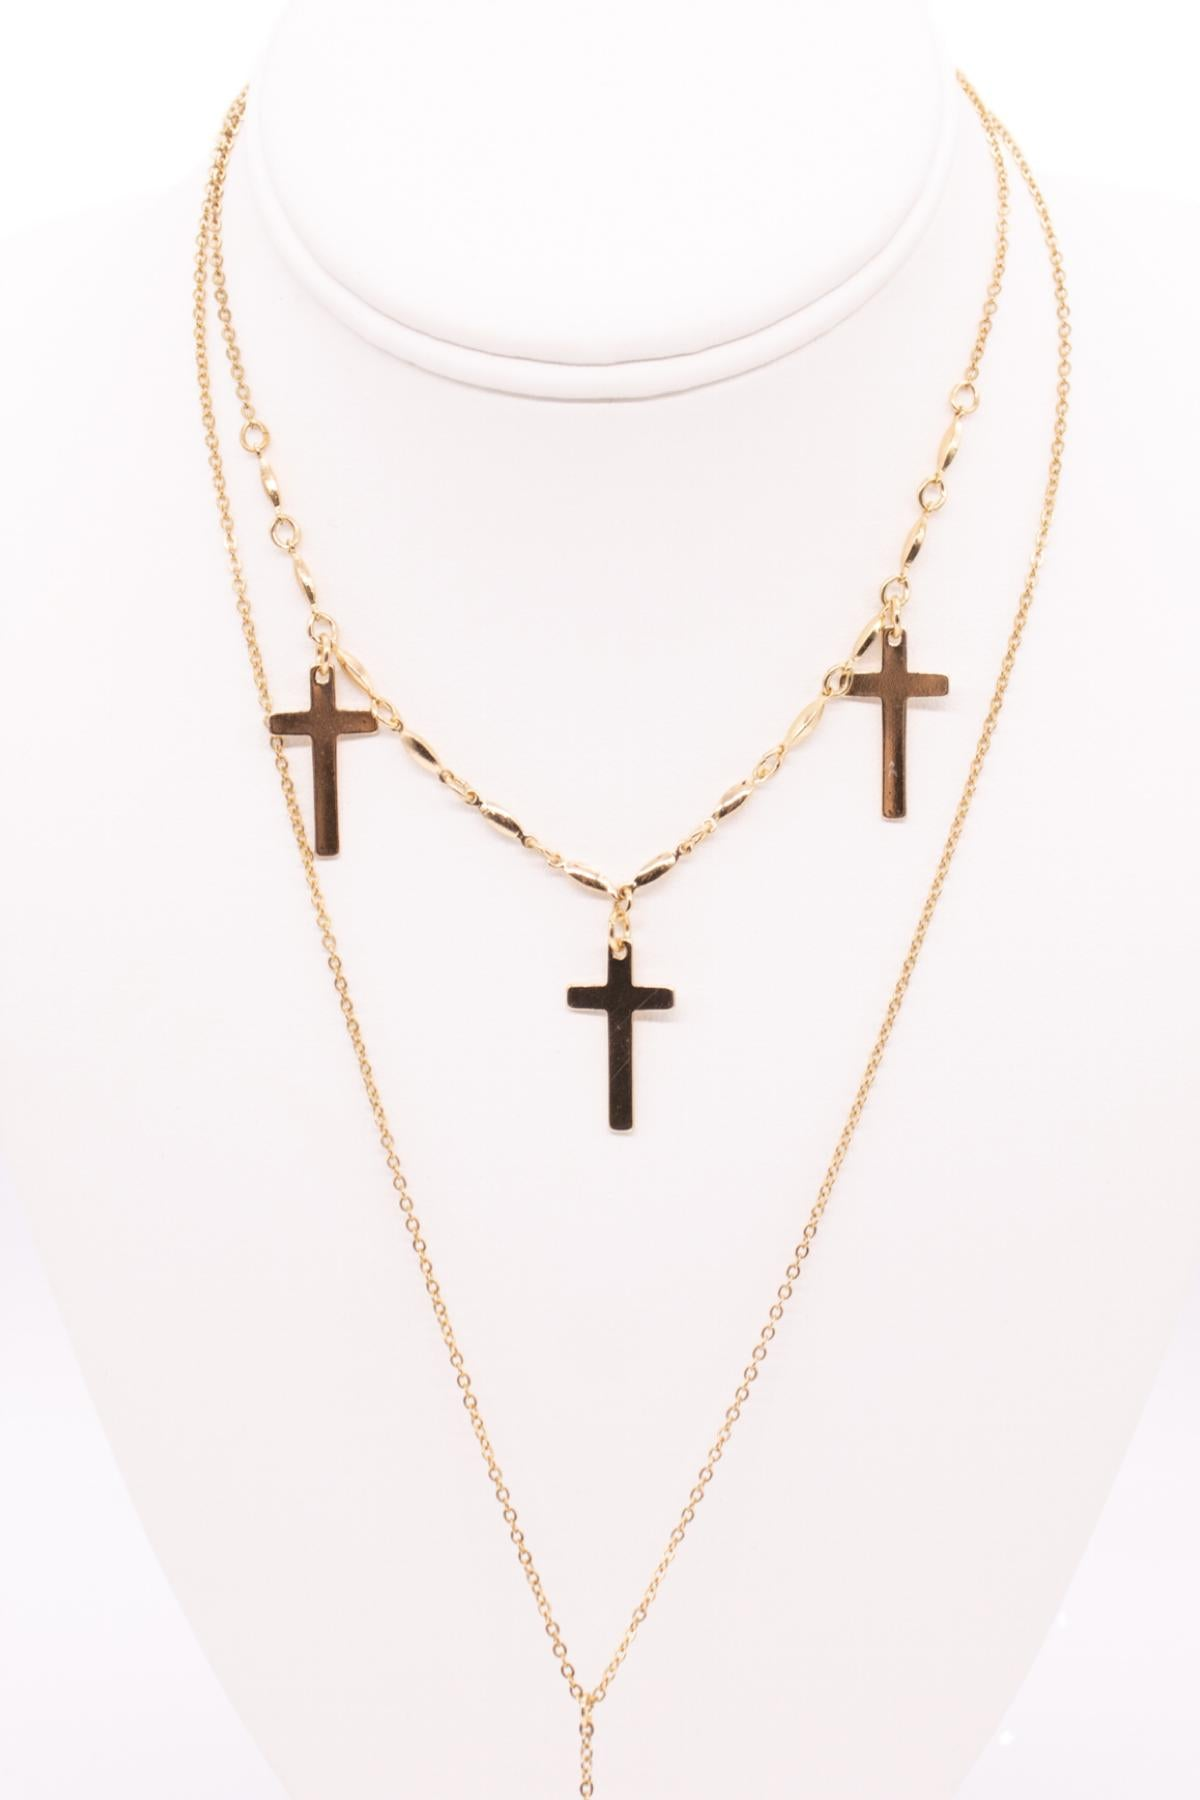 GOLD DOUBLE CROSS NECKLACE